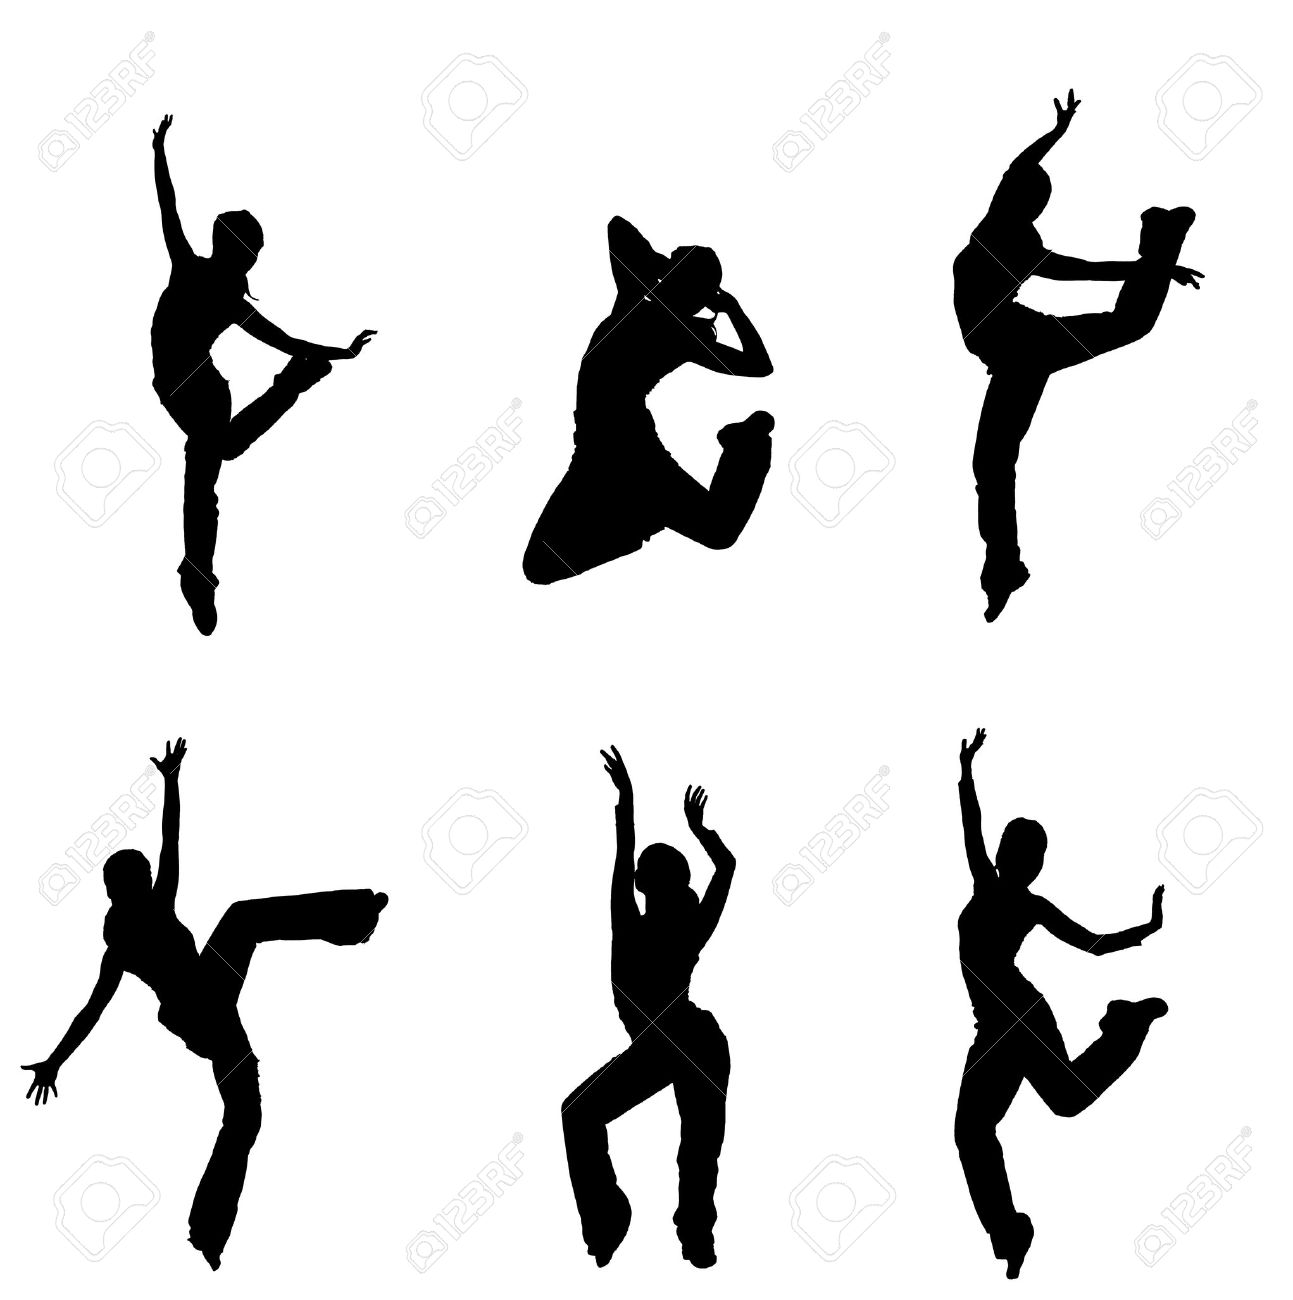 silhouettes of street dancers on a white background Stock Photo - 10575524